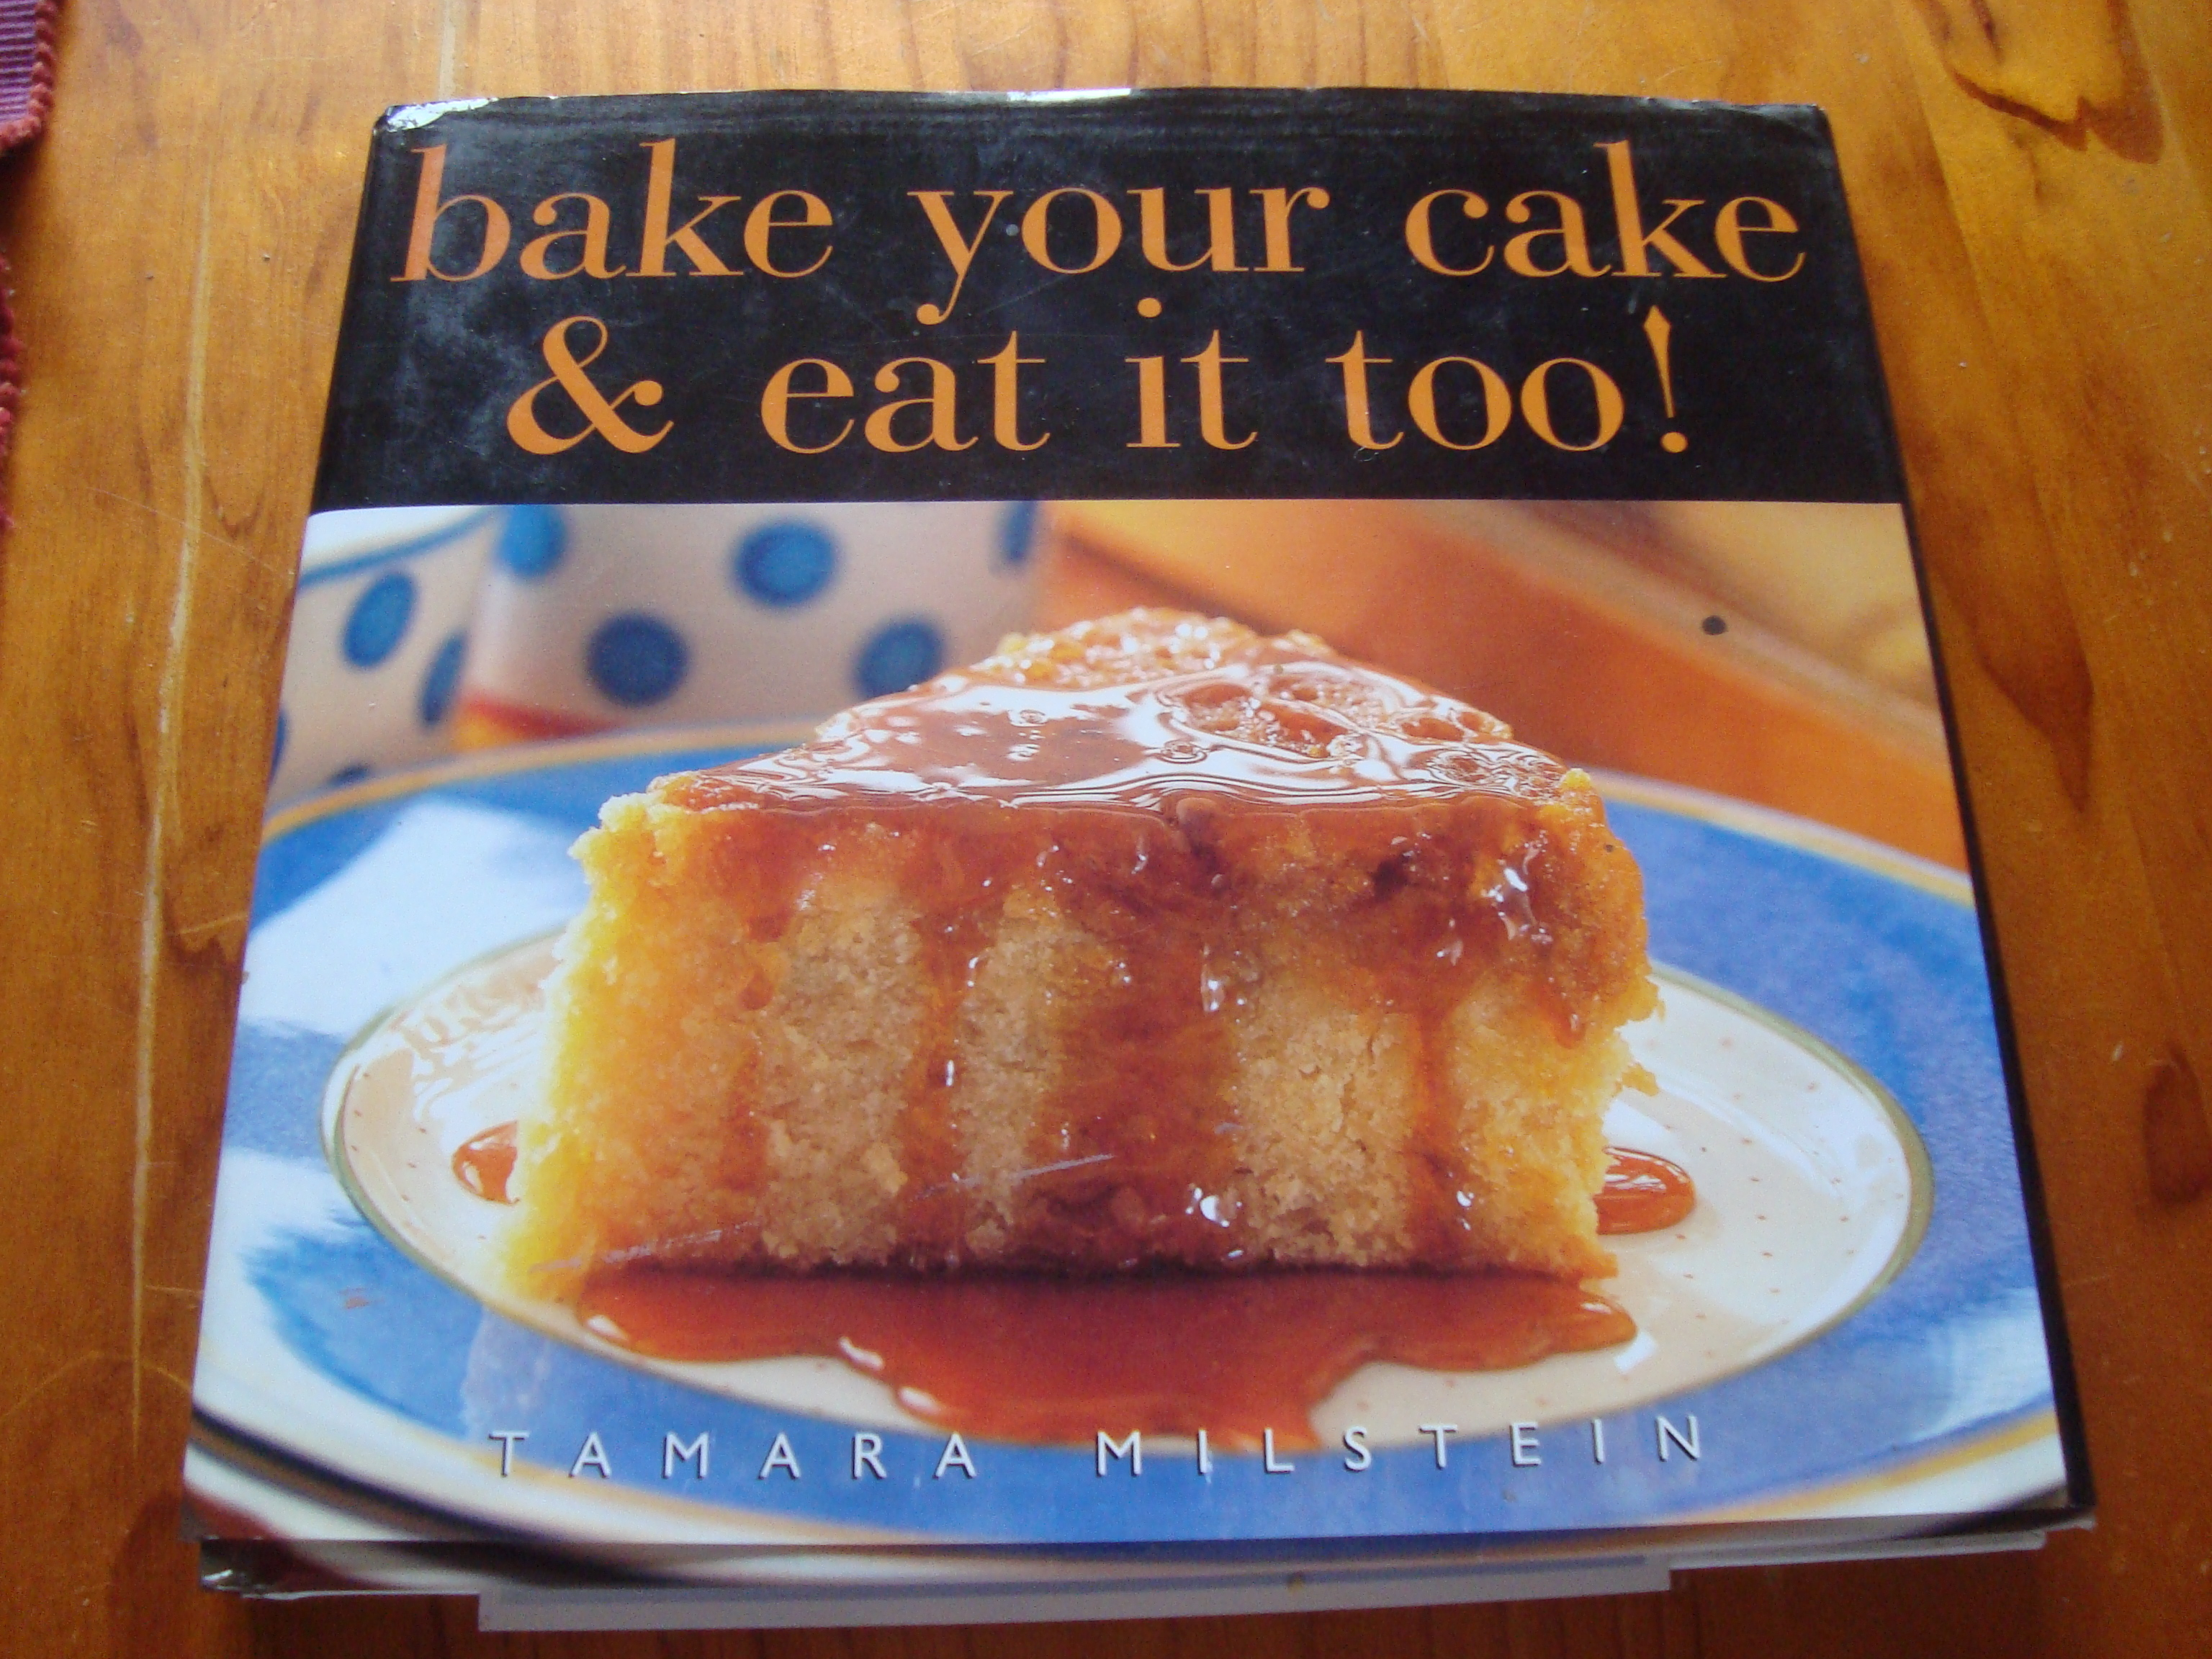 the Indonesian Nutmeg Cake in the regretfully named Bake Your Cake ...